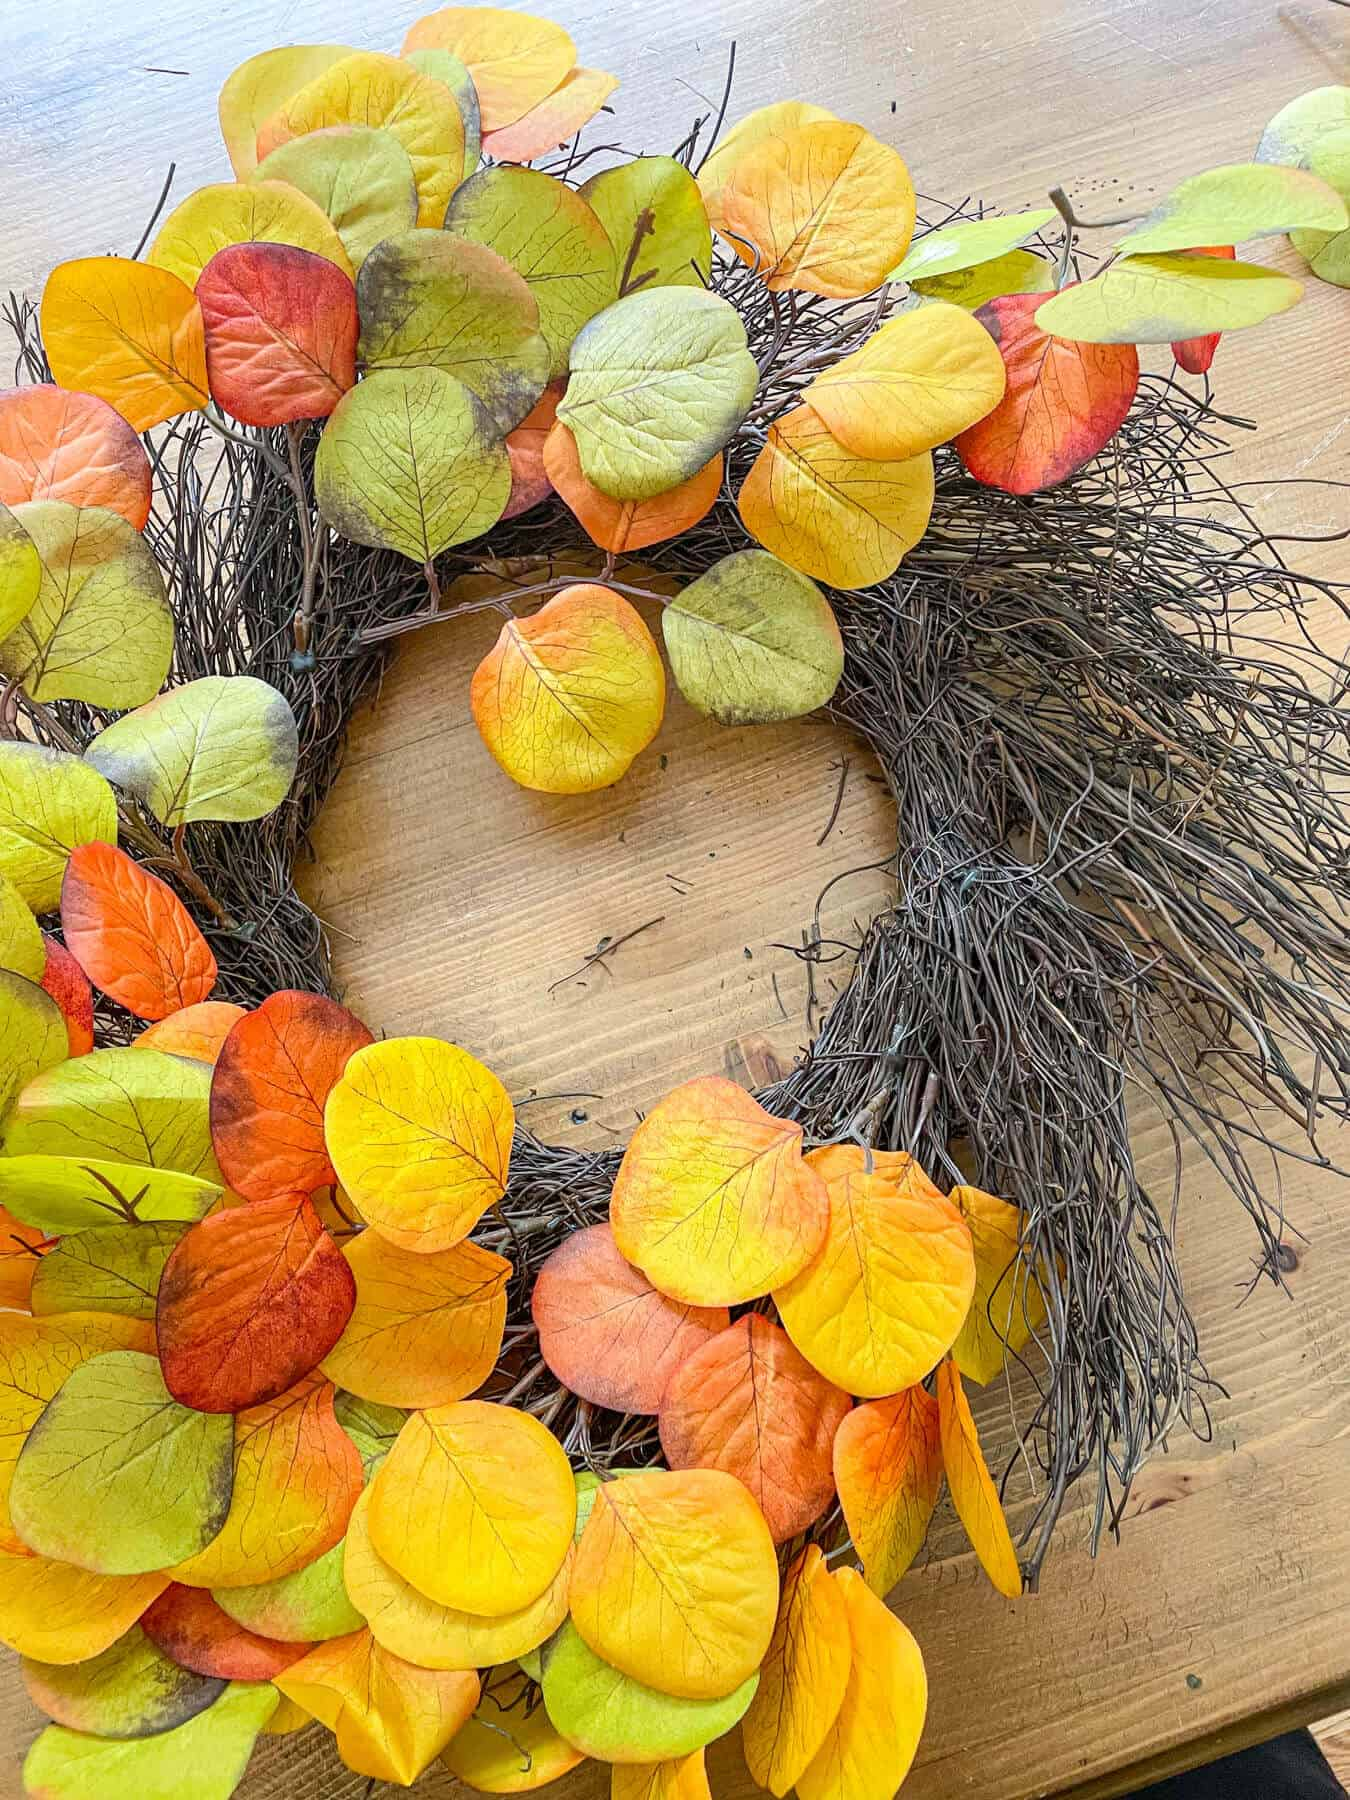 disassembling a fall grapevine wreath